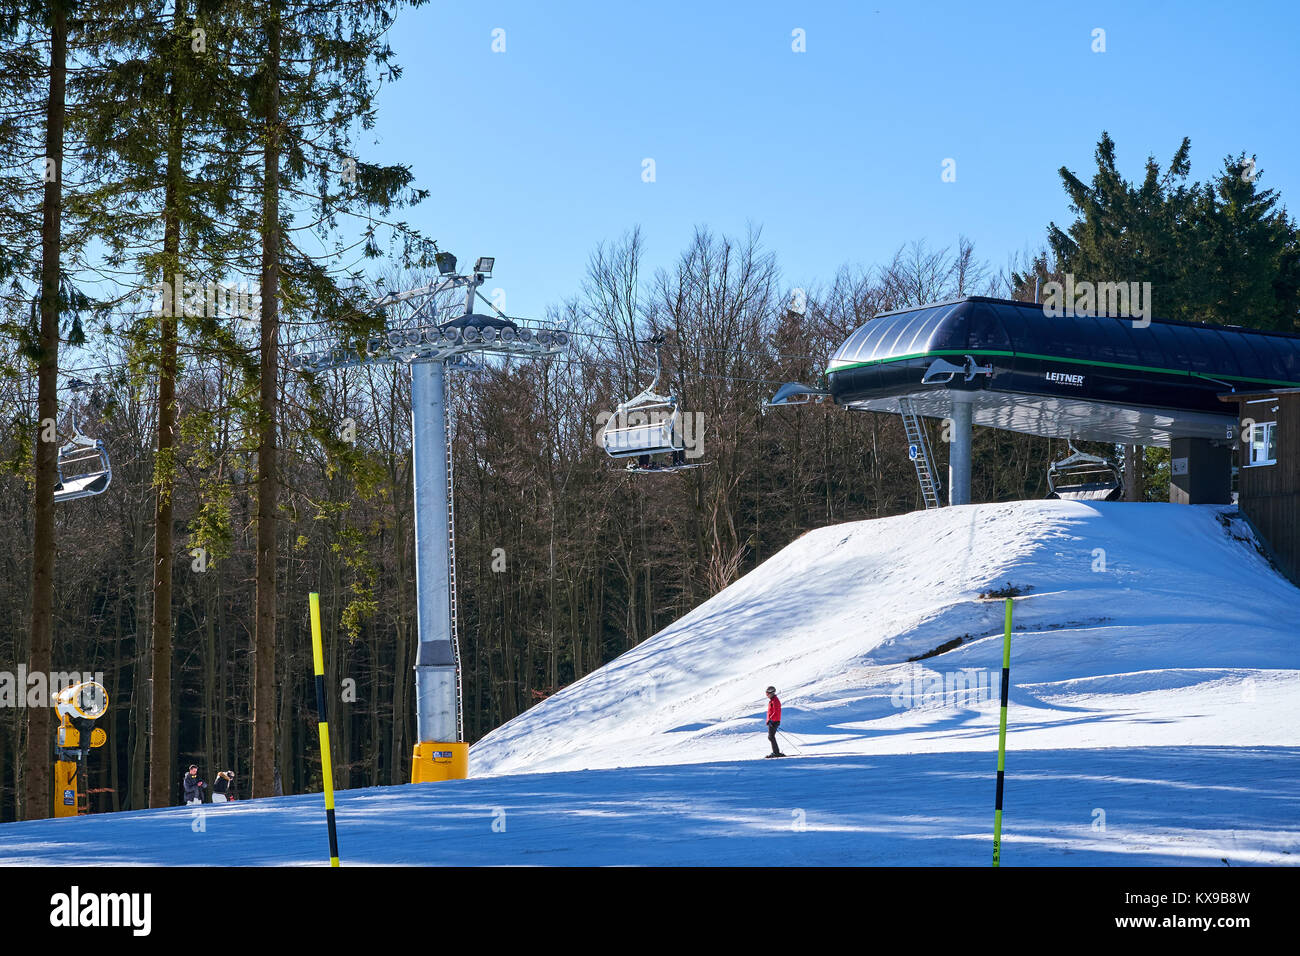 WINTERBERG, GERMANY - FEBRUARY 15, 2017: Chairlift just about to land at a mountain top at Ski Carousel Winterberg - Stock Image